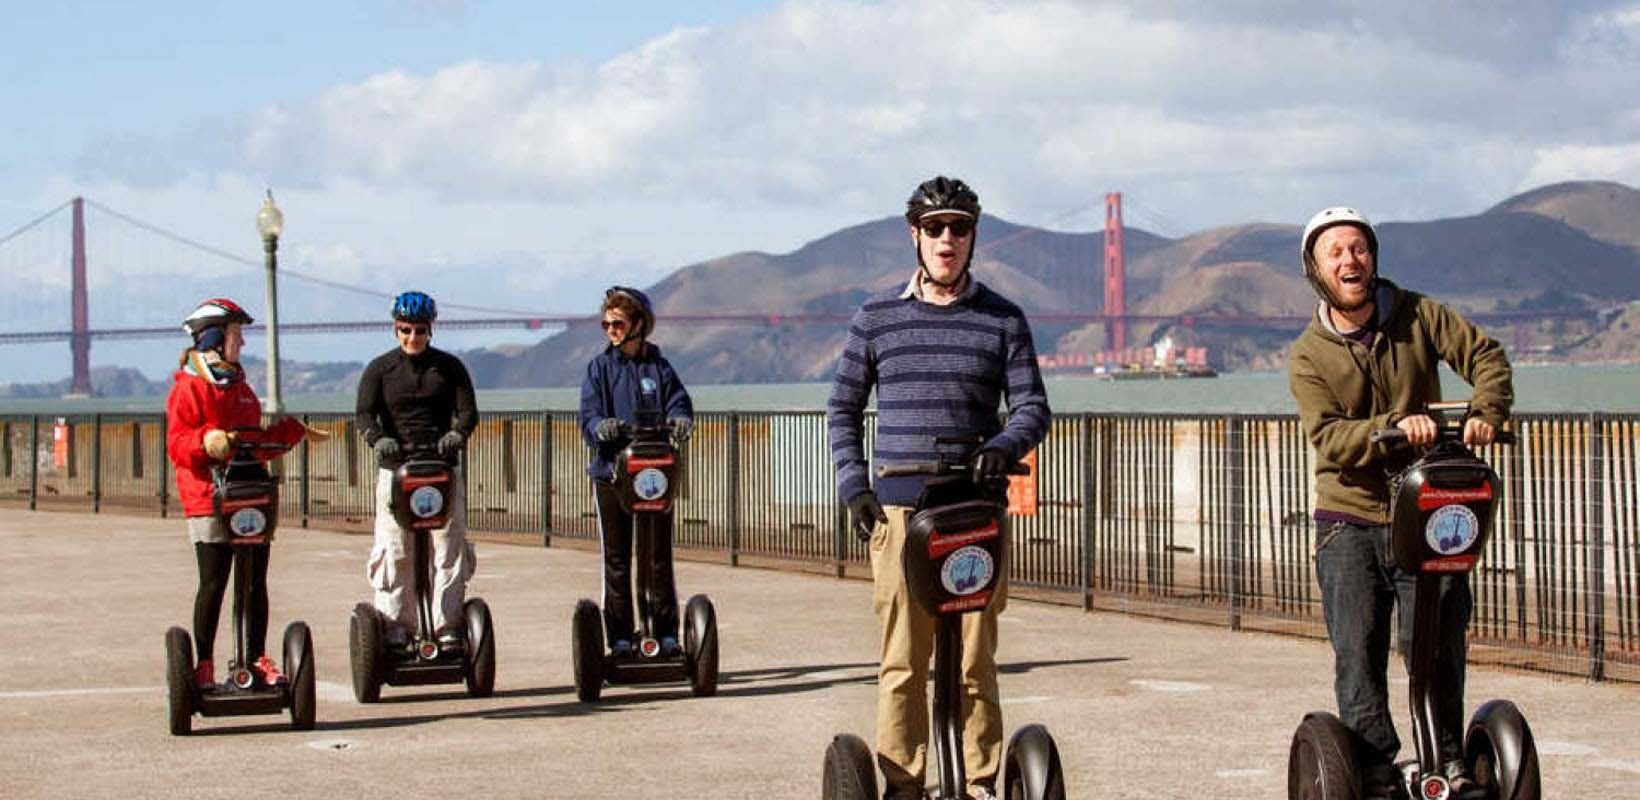 group-team-building-segway-scavenger-hunt